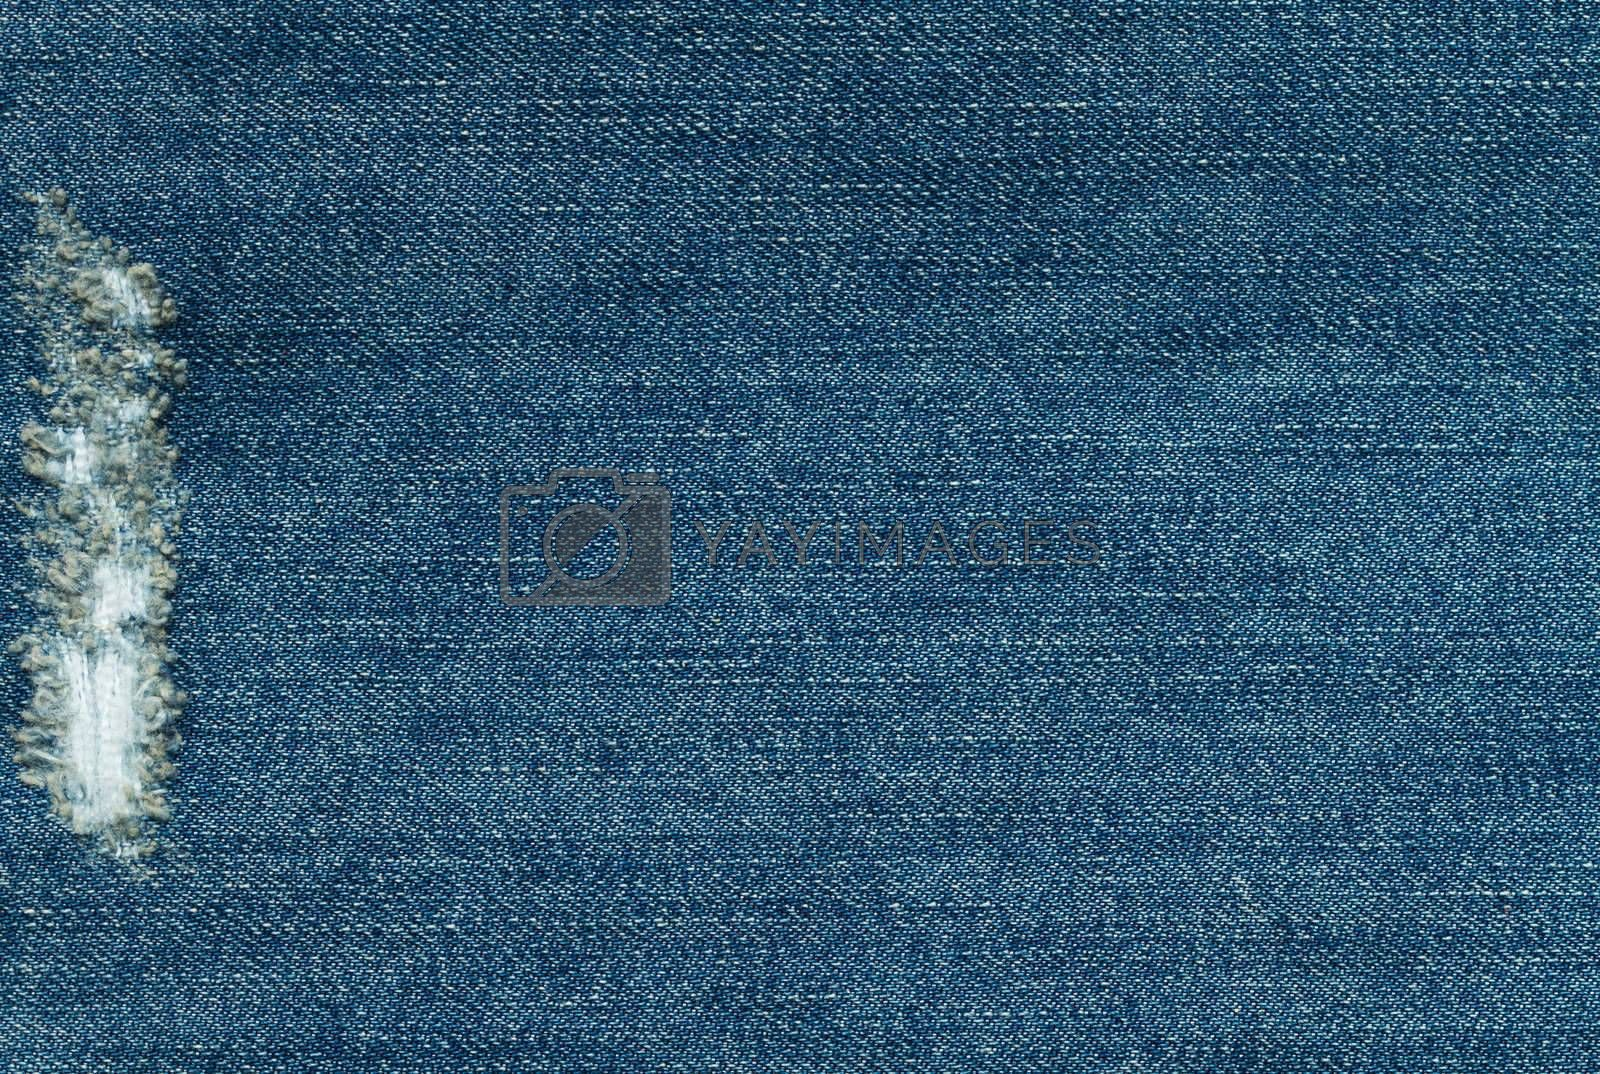 blue jean background